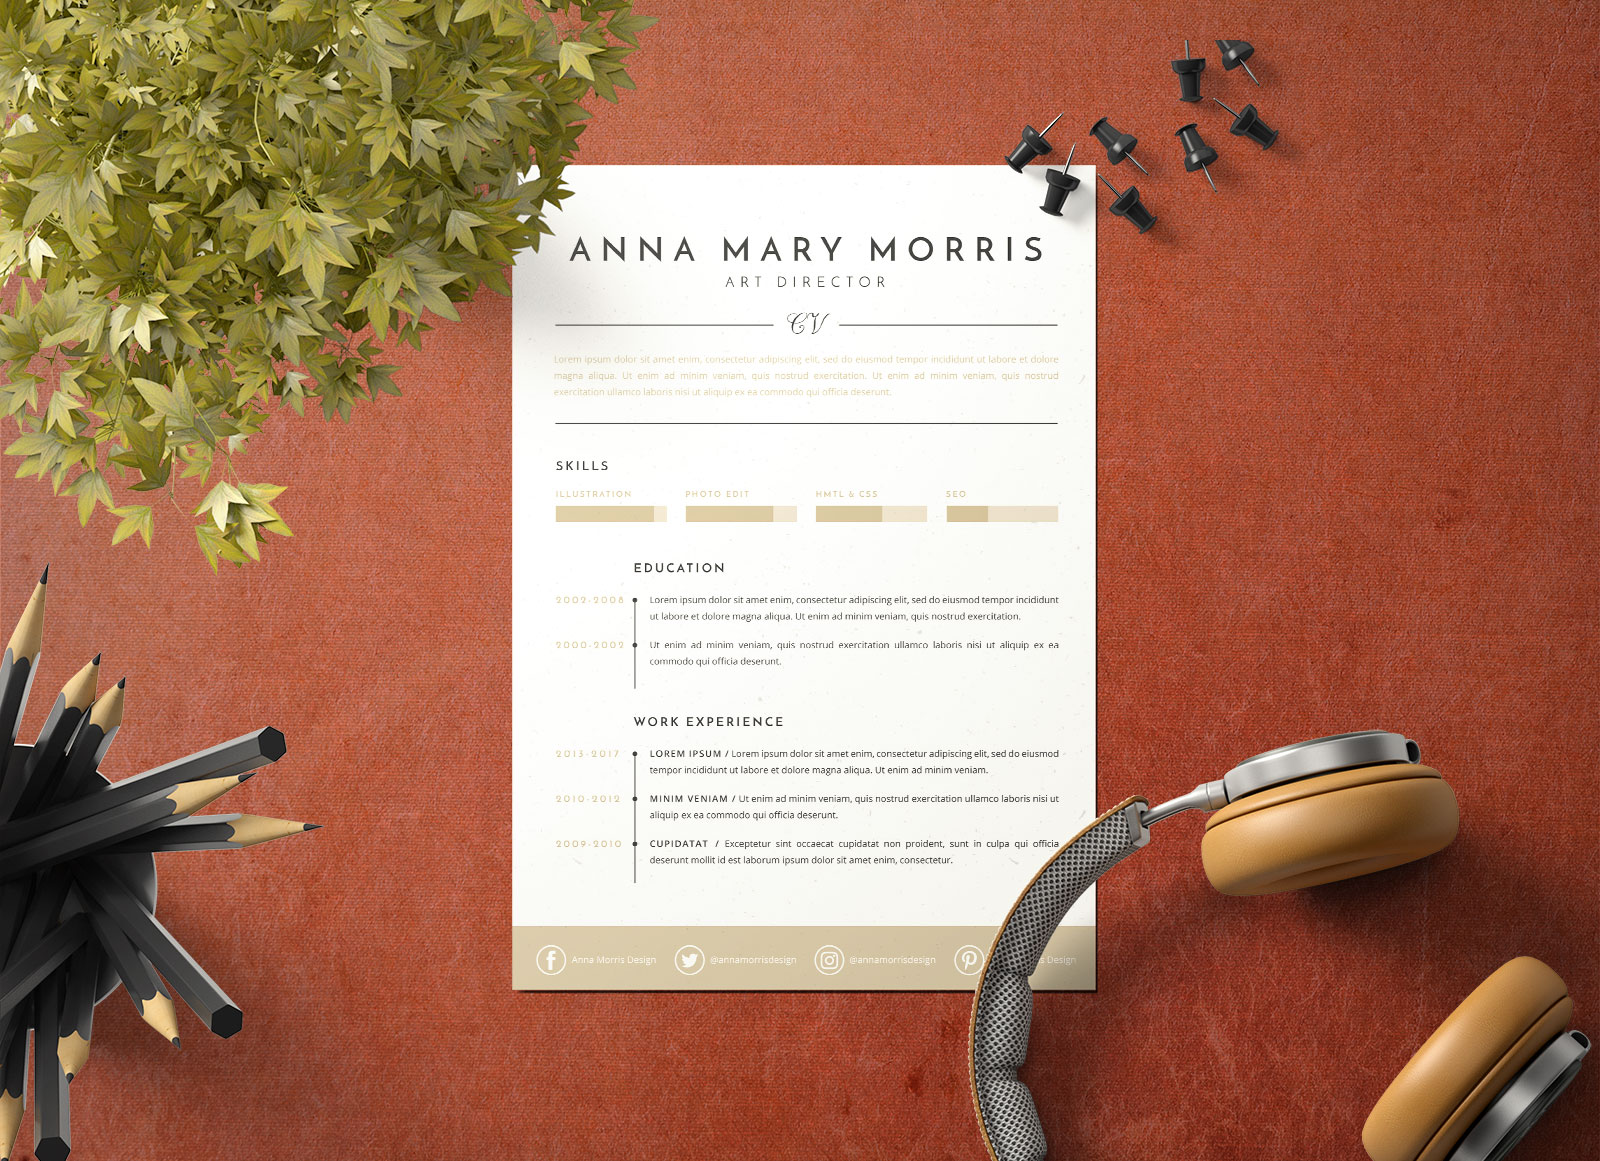 Free-Minimalistic-Ai-Resume-Template-for-Art-Directors-3